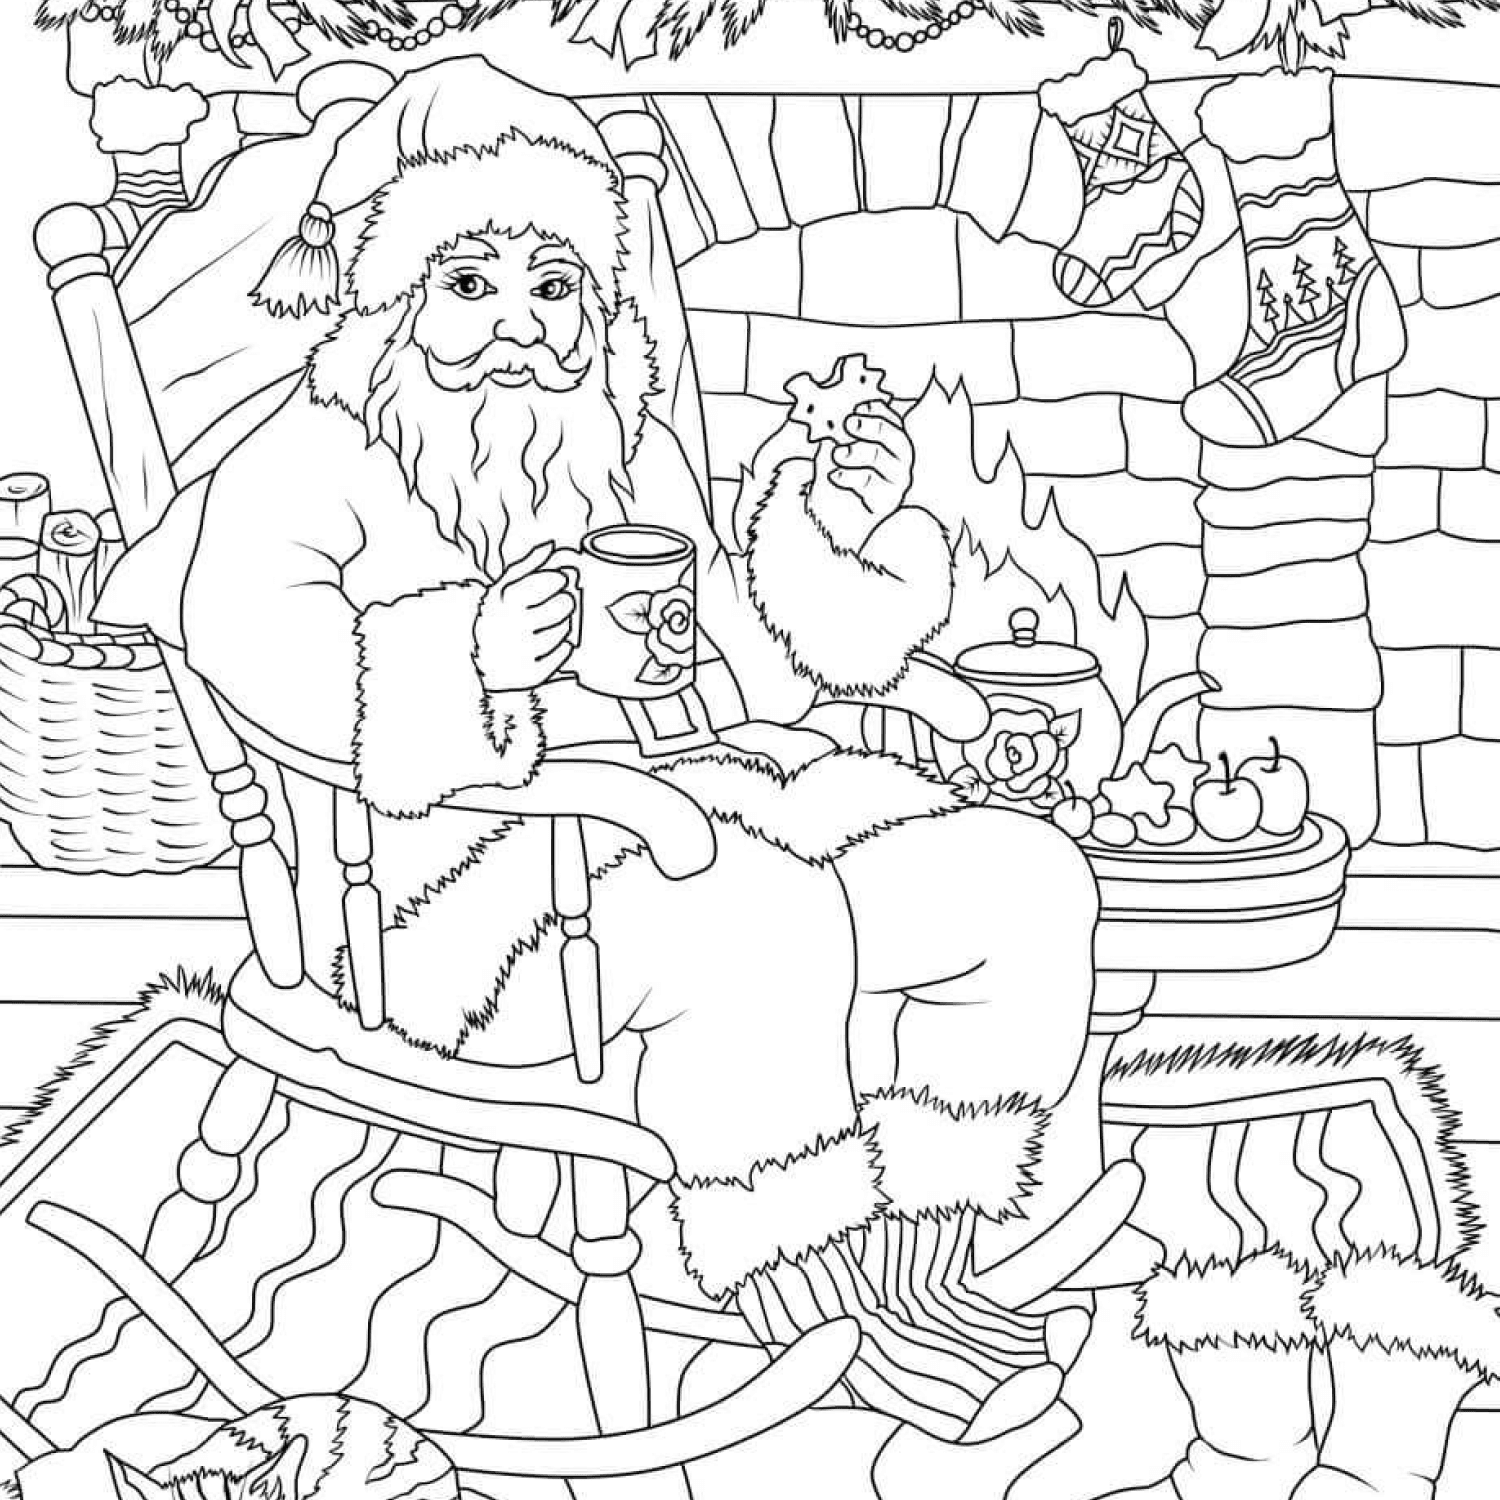 Santa Claus drinking tea with cookie while soaking up in front of the fireplace cover image.